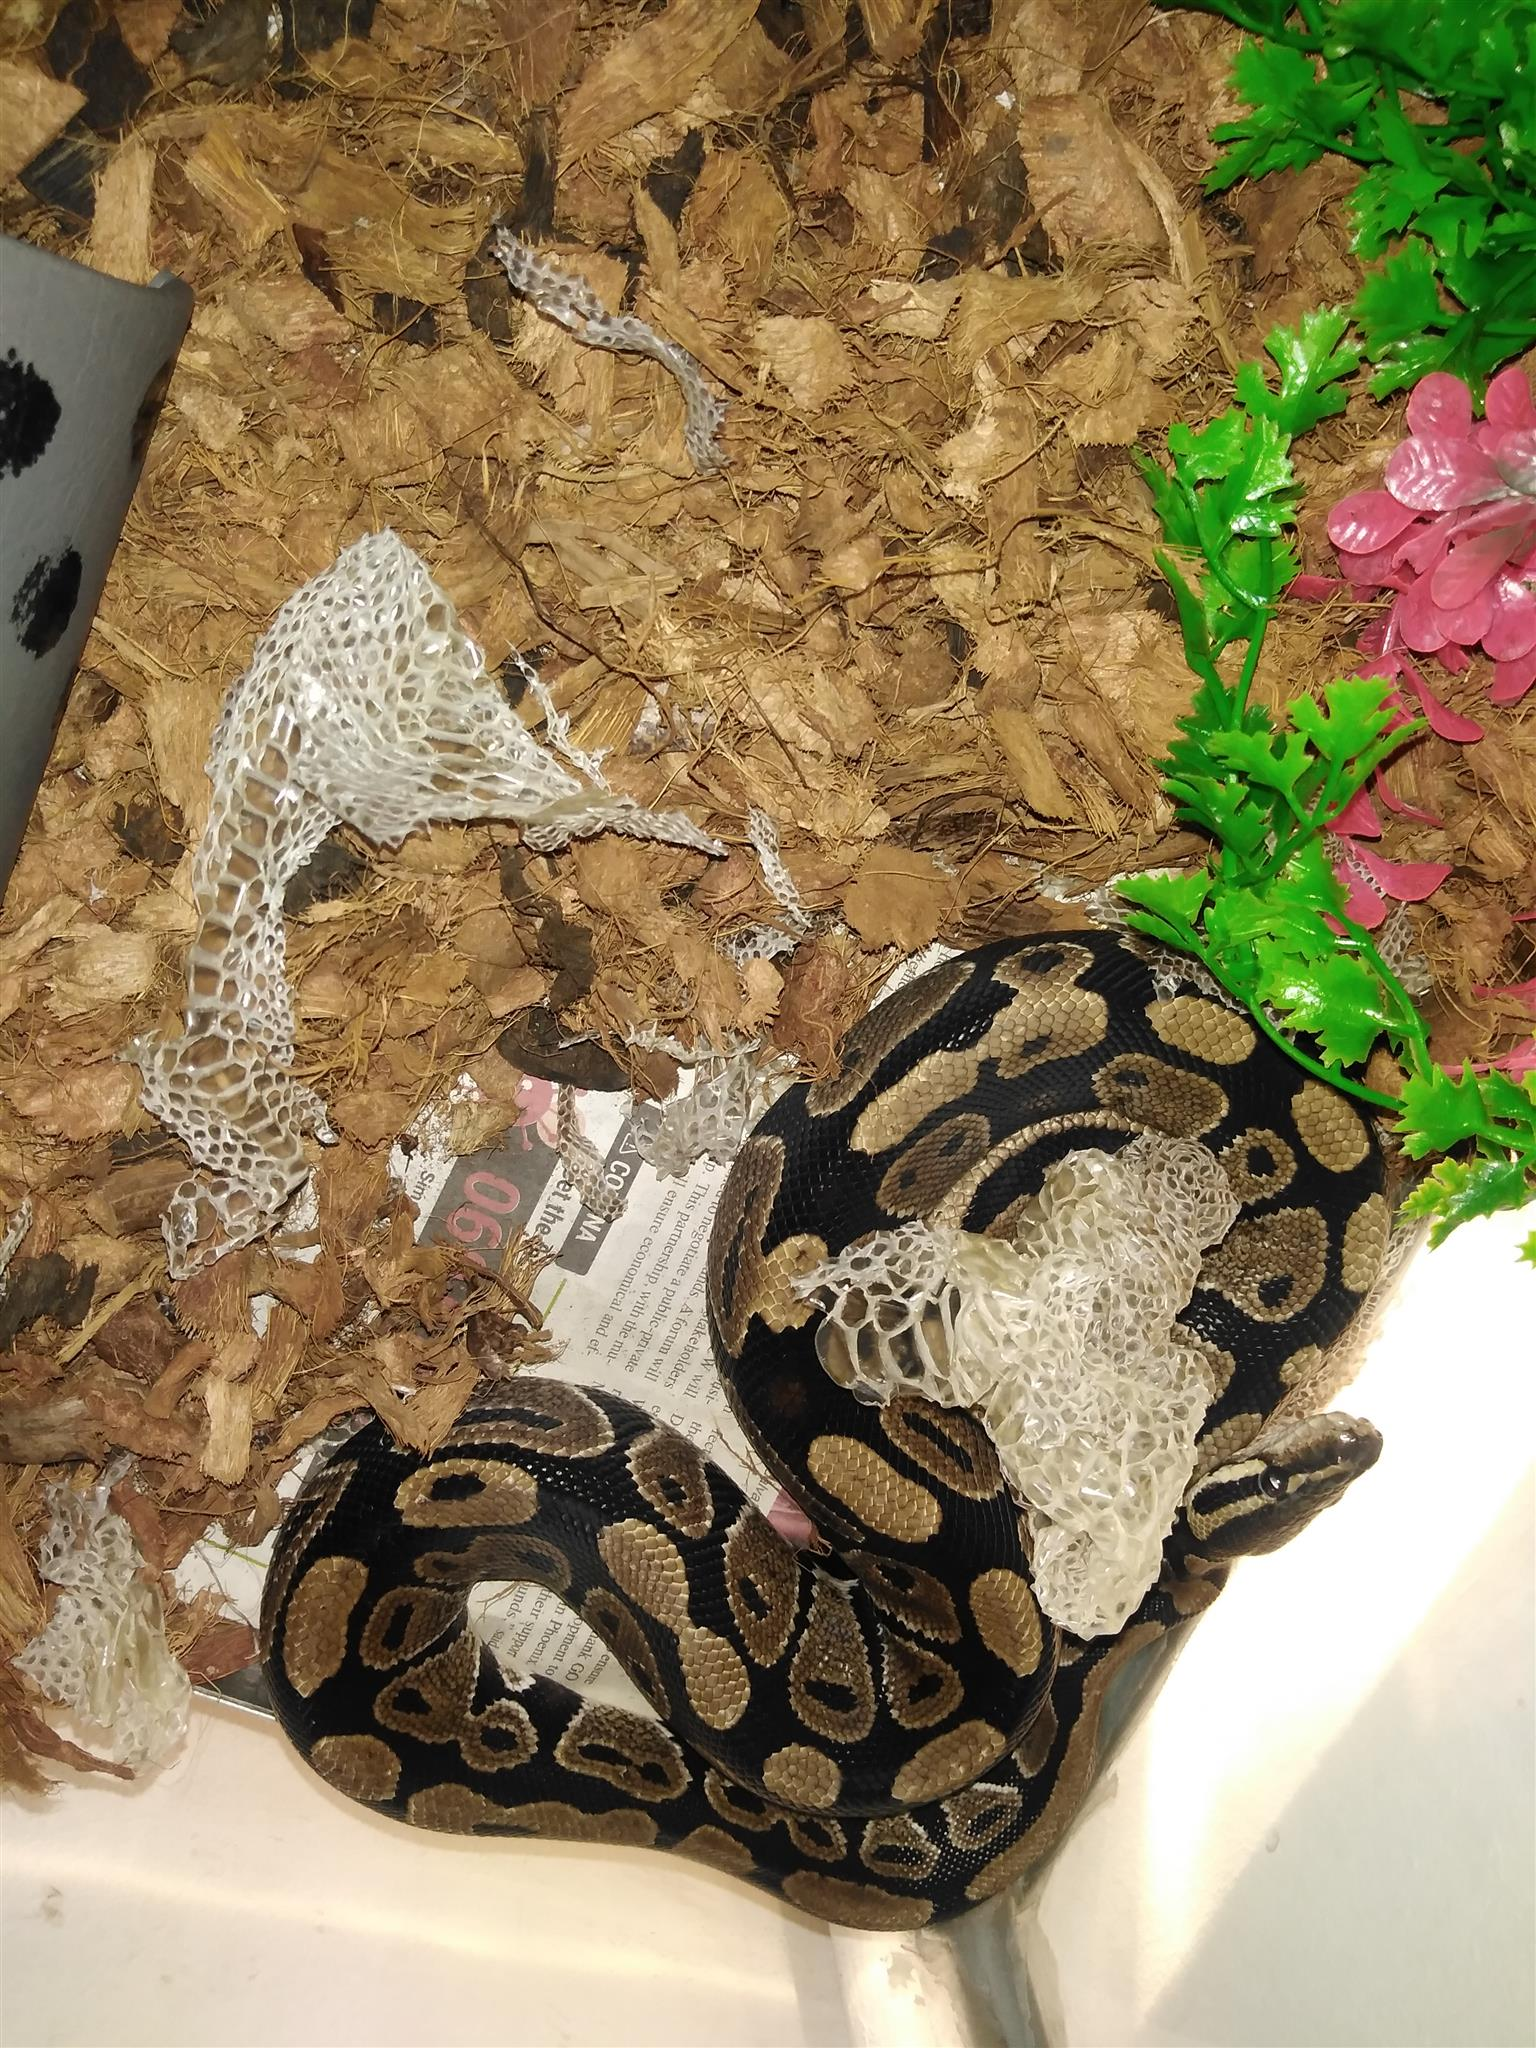 Ball python for sale with custom tank